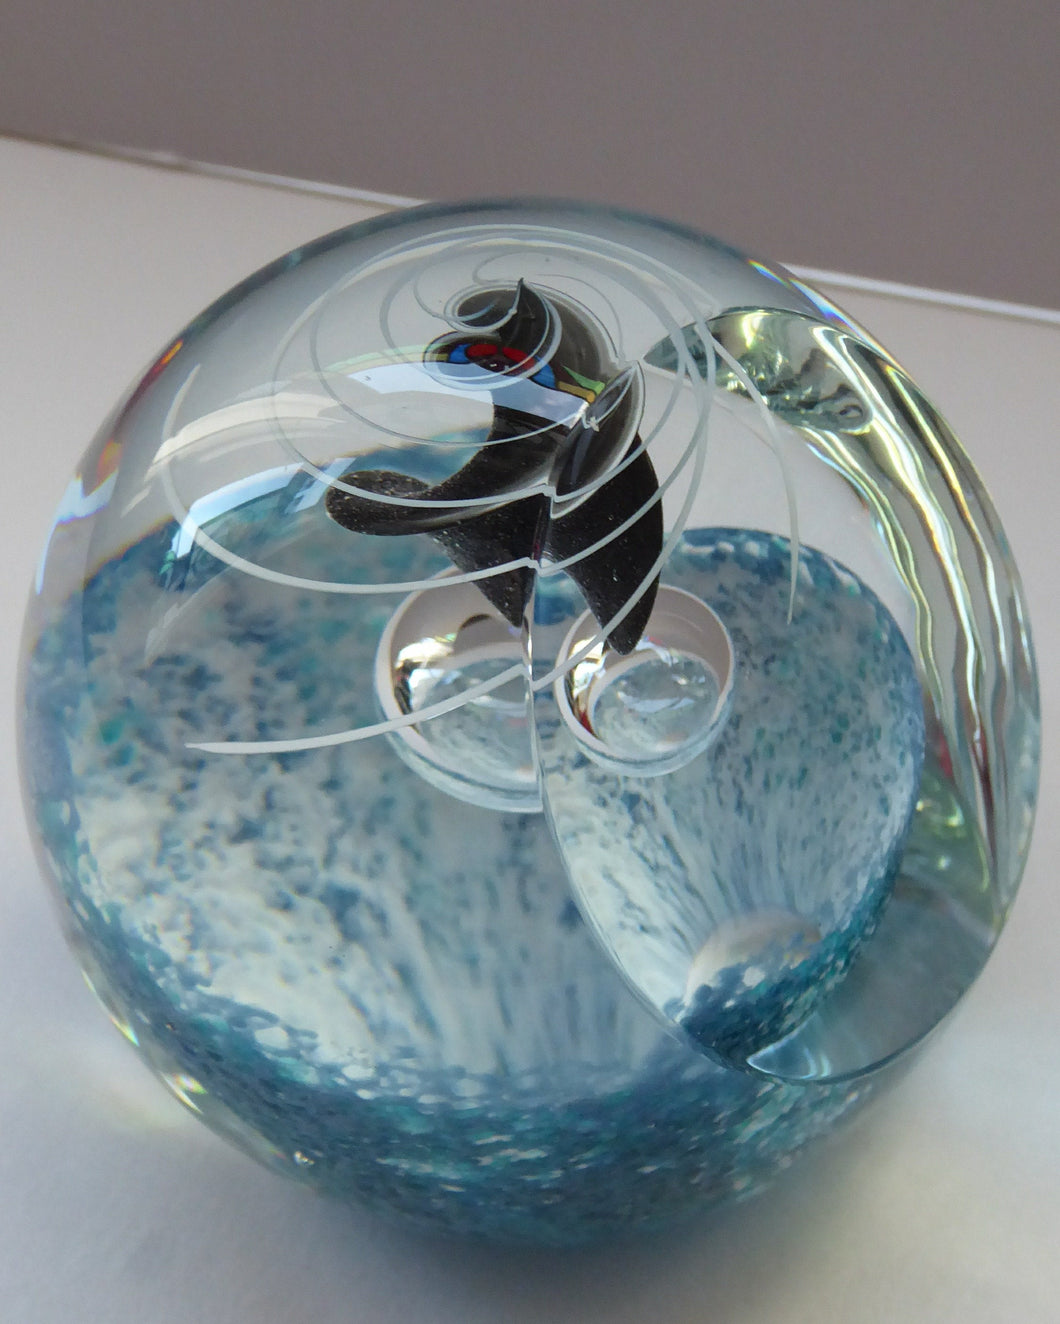 SCOTTISH GLASS. Vintage Limited Edition Caithness Glass Paperweight Entitled FREEDOM by Alastair MacIntosh. 1990